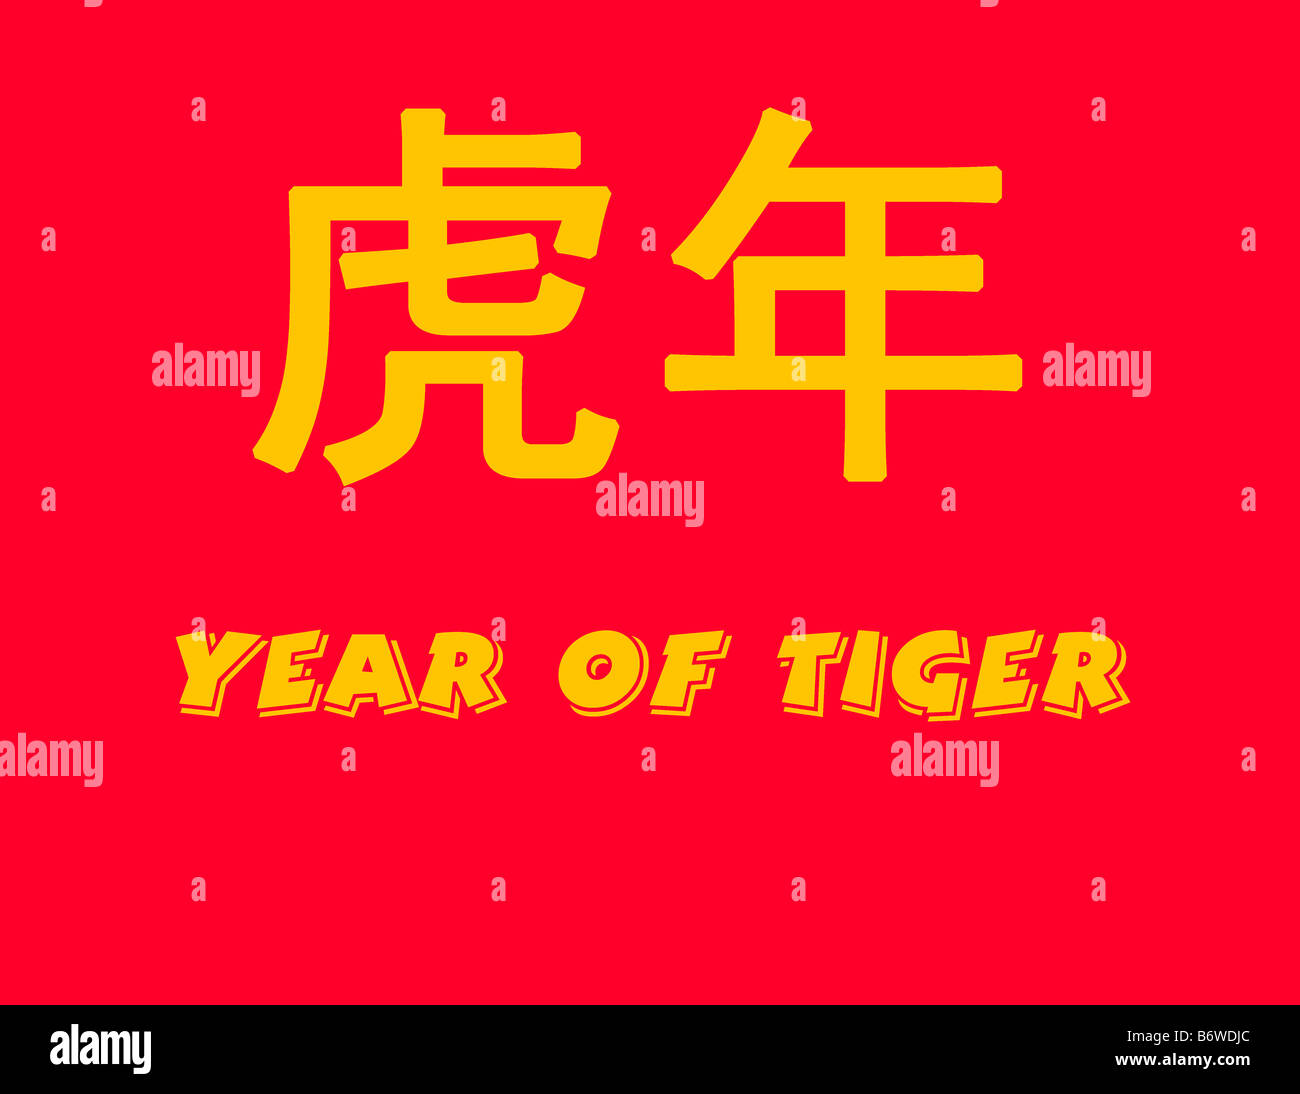 Year of the Tiger in yellow Chinese and English text with red background - Stock Image